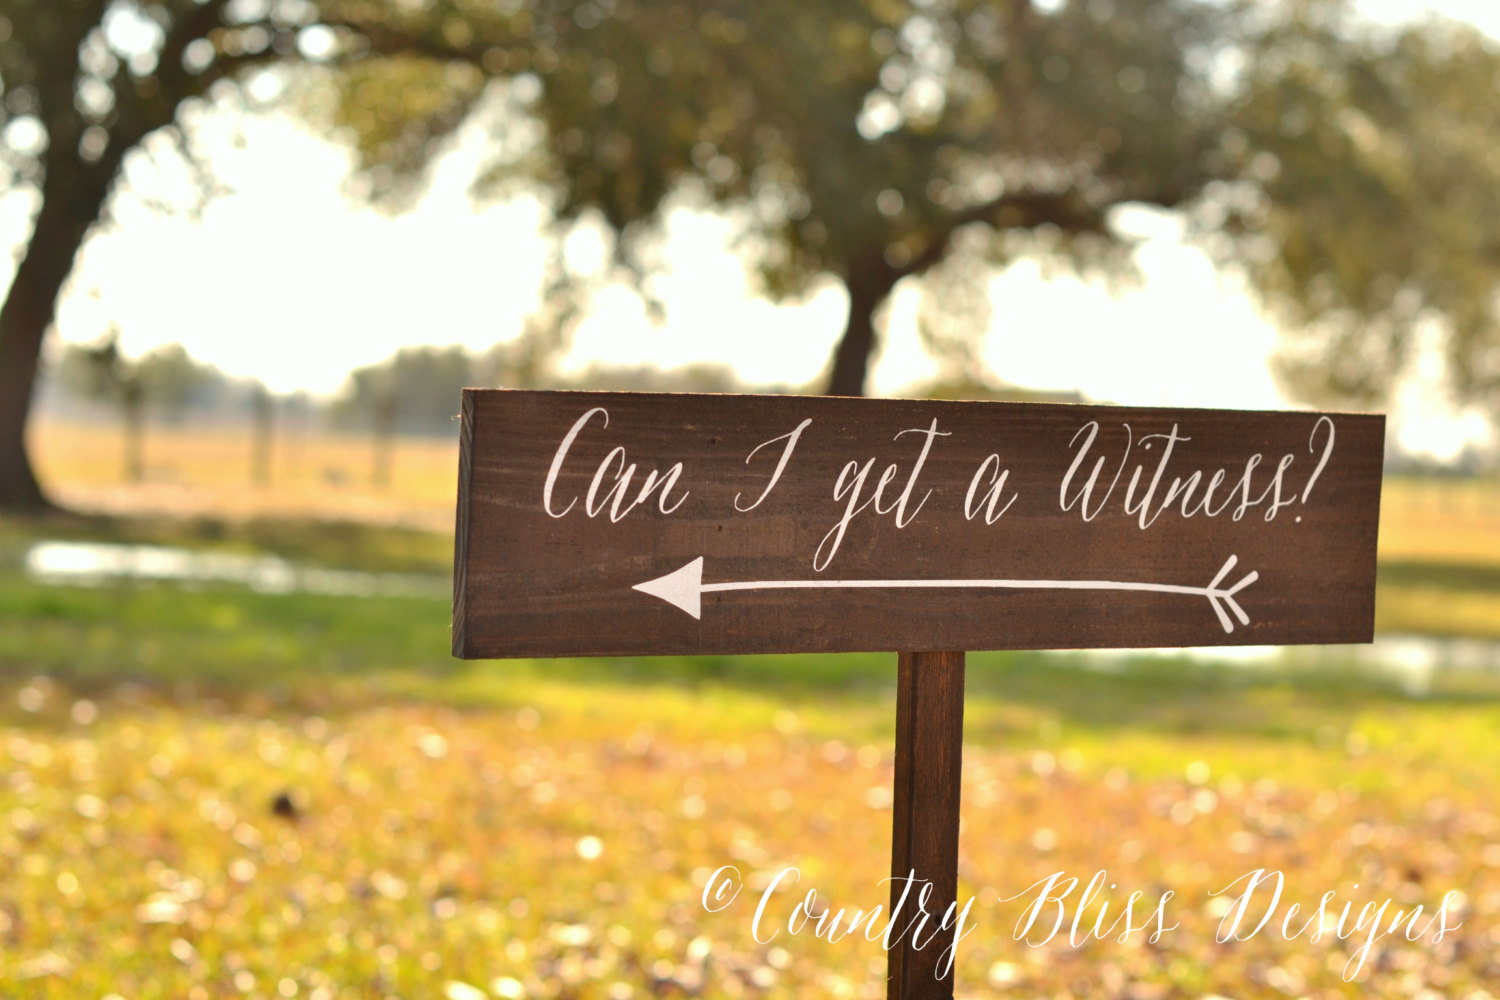 can i get a witness wedding sign by country bliss designs | signs entrance weddings | http://emmalinebride.com/decor/signs-entrance-weddings/